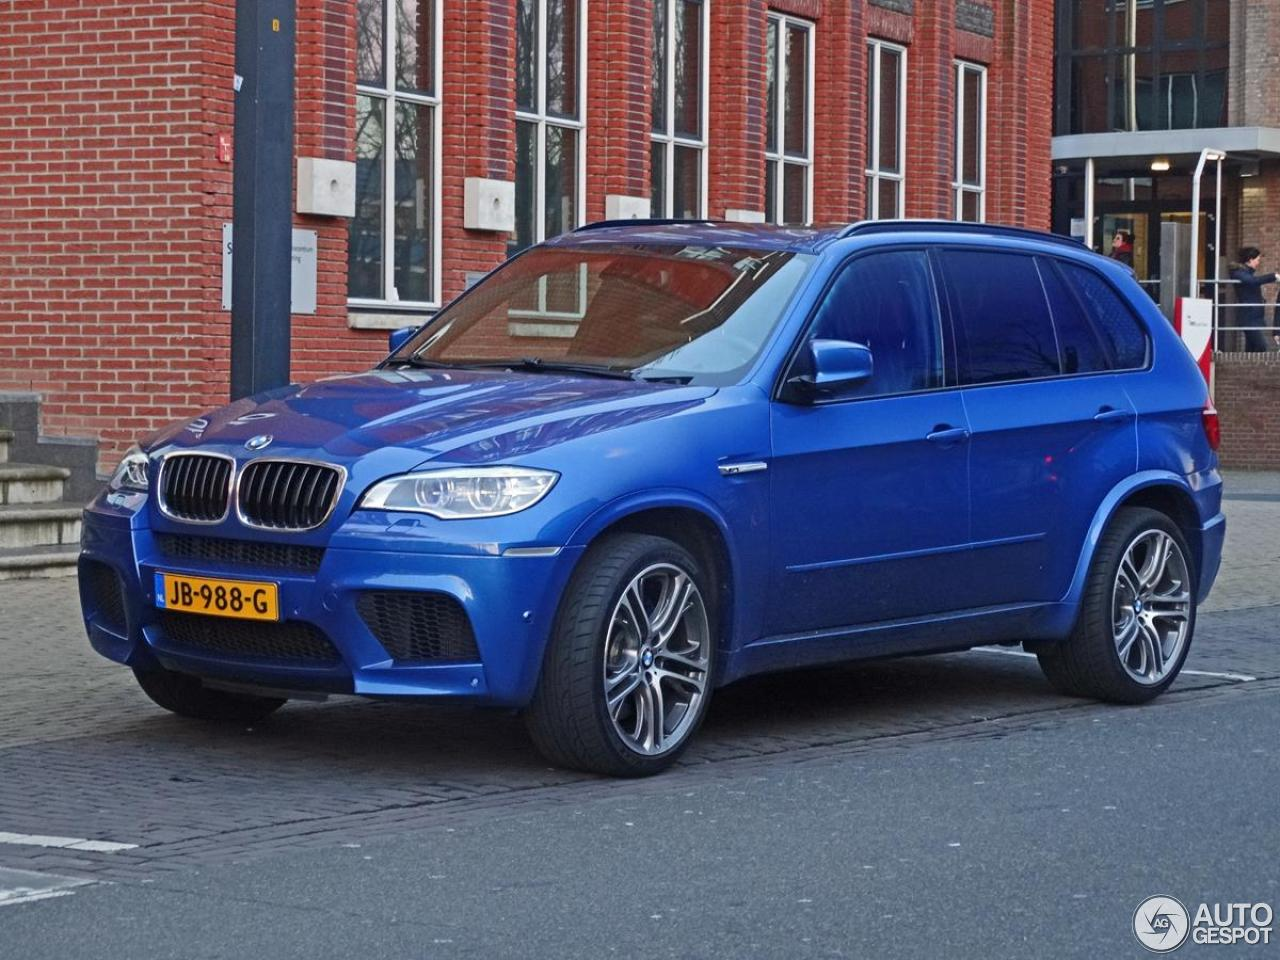 Bmw X5 M E70 2013 27 April 2016 Autogespot